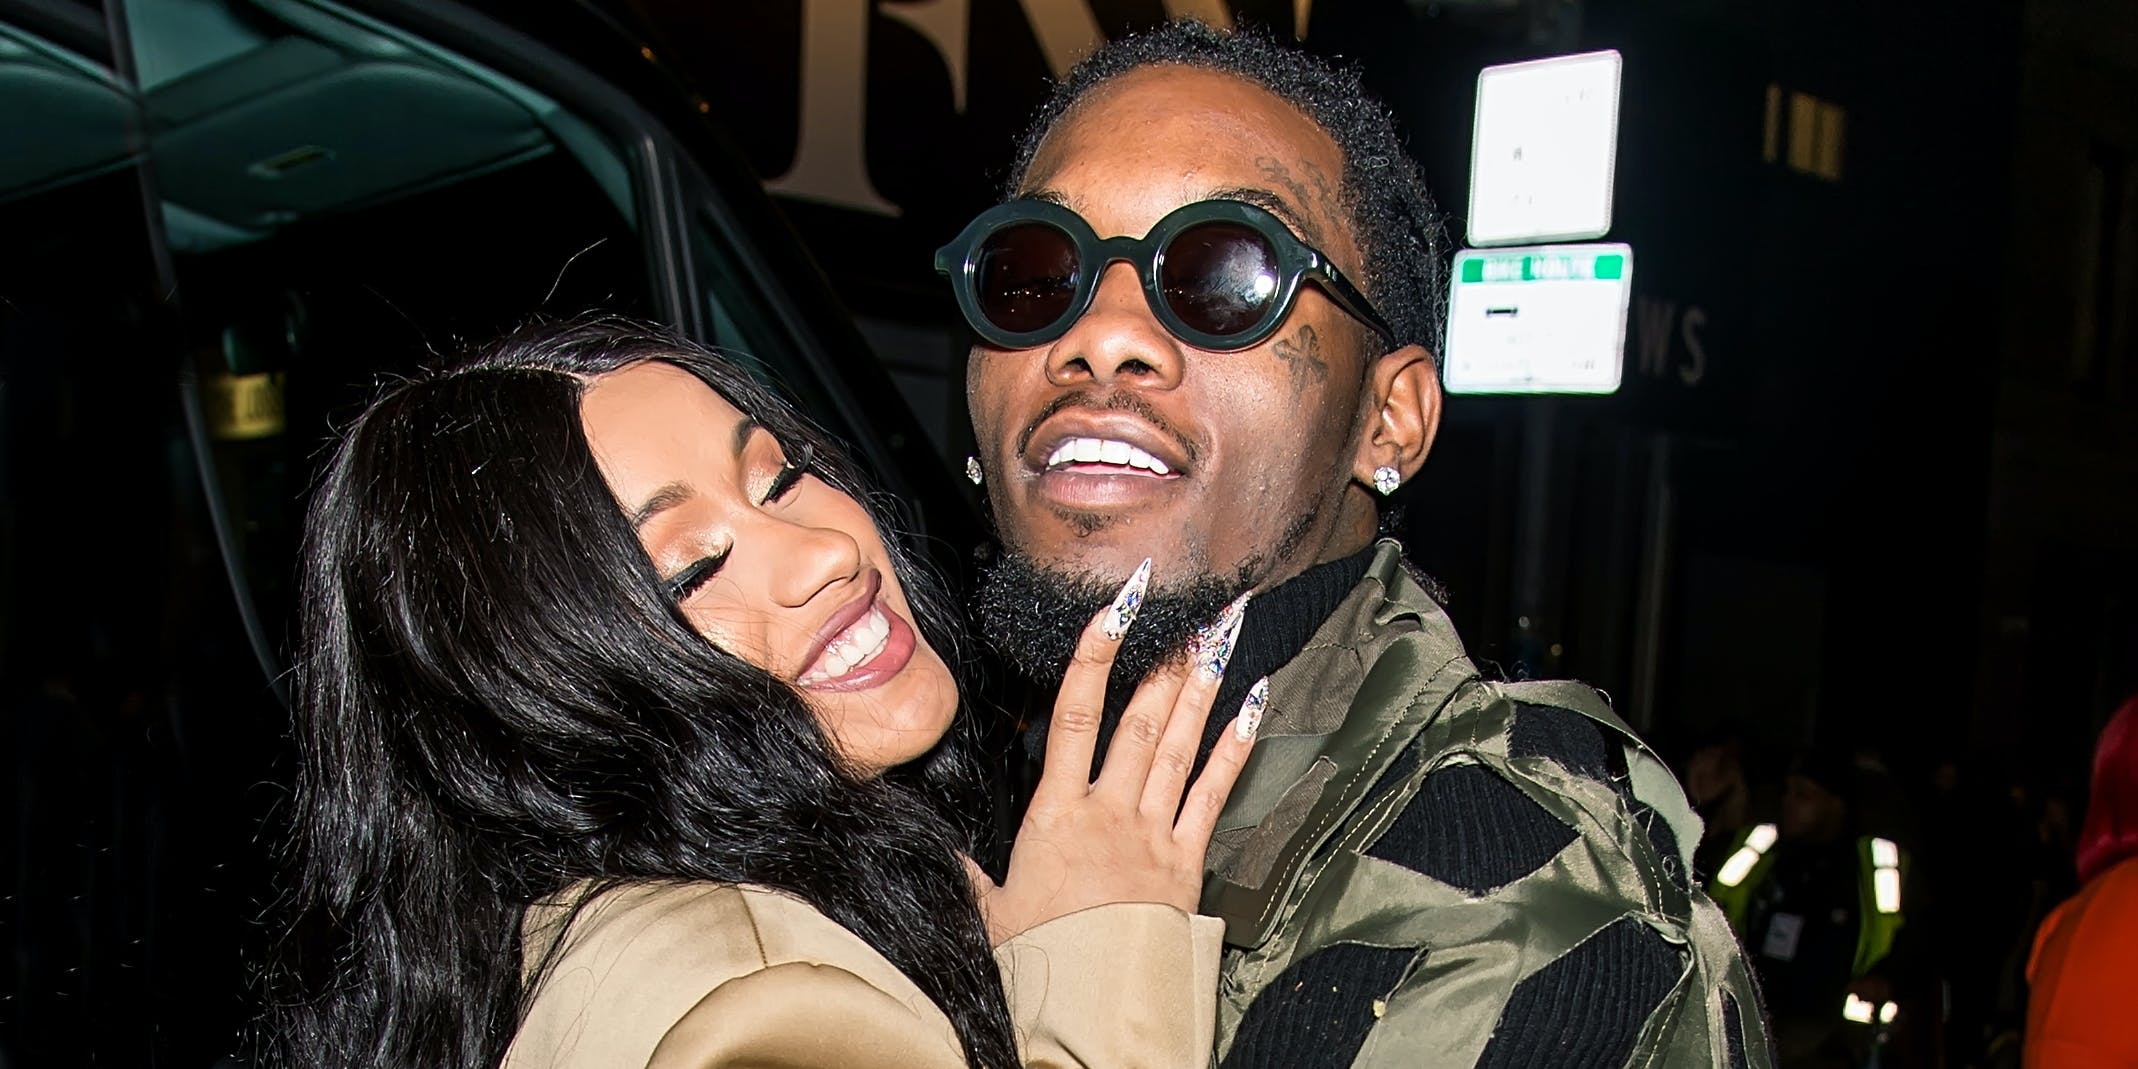 NEW YORK, NY - FEBRUARY 11: Recording artists Cardi B and Offset of the group Migos are seen leaving Prabal Gurung fashion show during New York Fashion Week at Spring Studios on February 11, 2018 in New York City. (Photo by Gilbert Carrasquillo/GC Images)